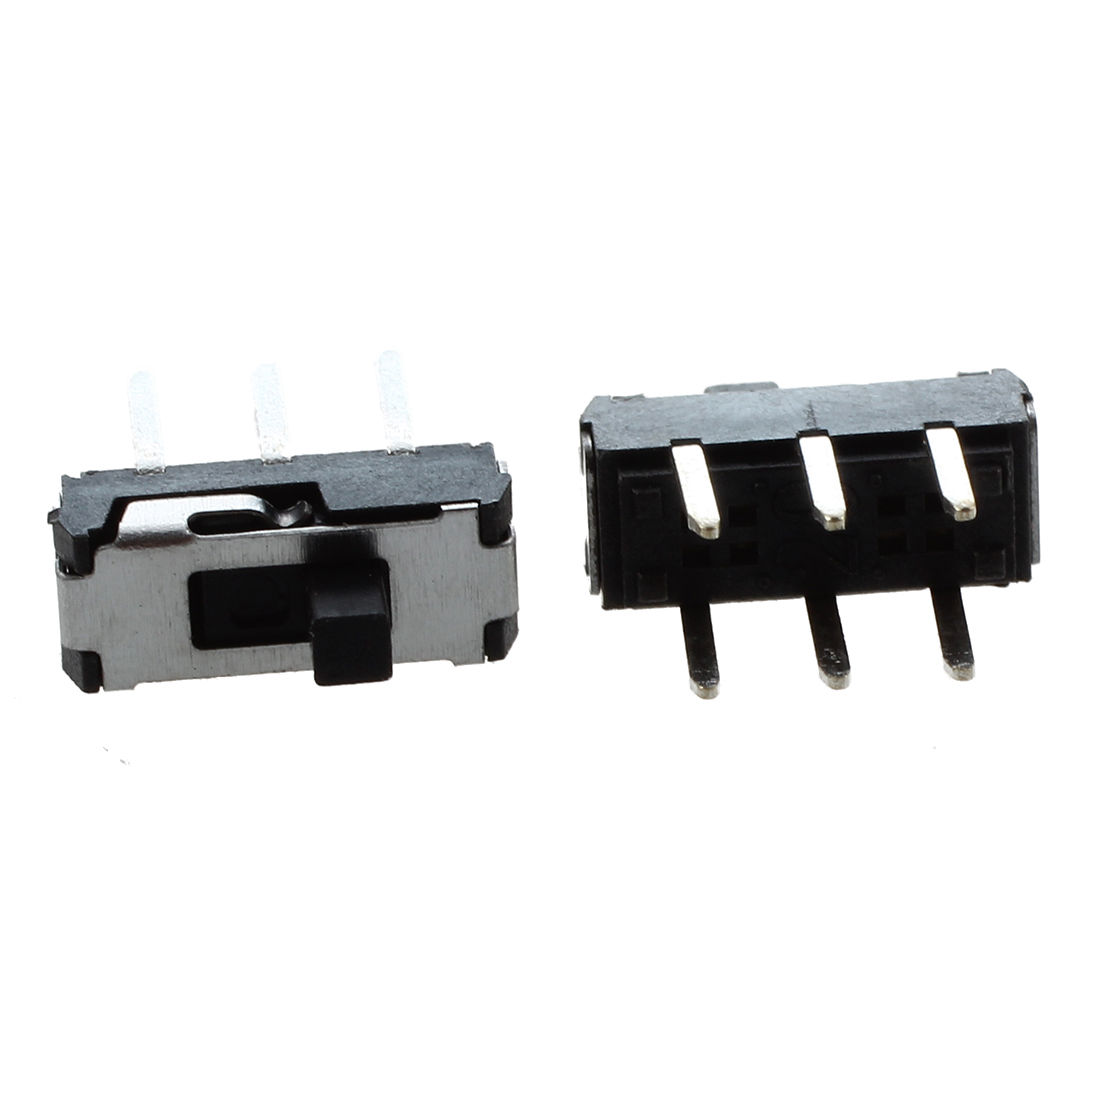 New 20 Pcs On/off/on Dpdt 2p2t 6 Pin Vertical Dip Slide Switch 9x4x3.5mm Customers First Lighting Accessories